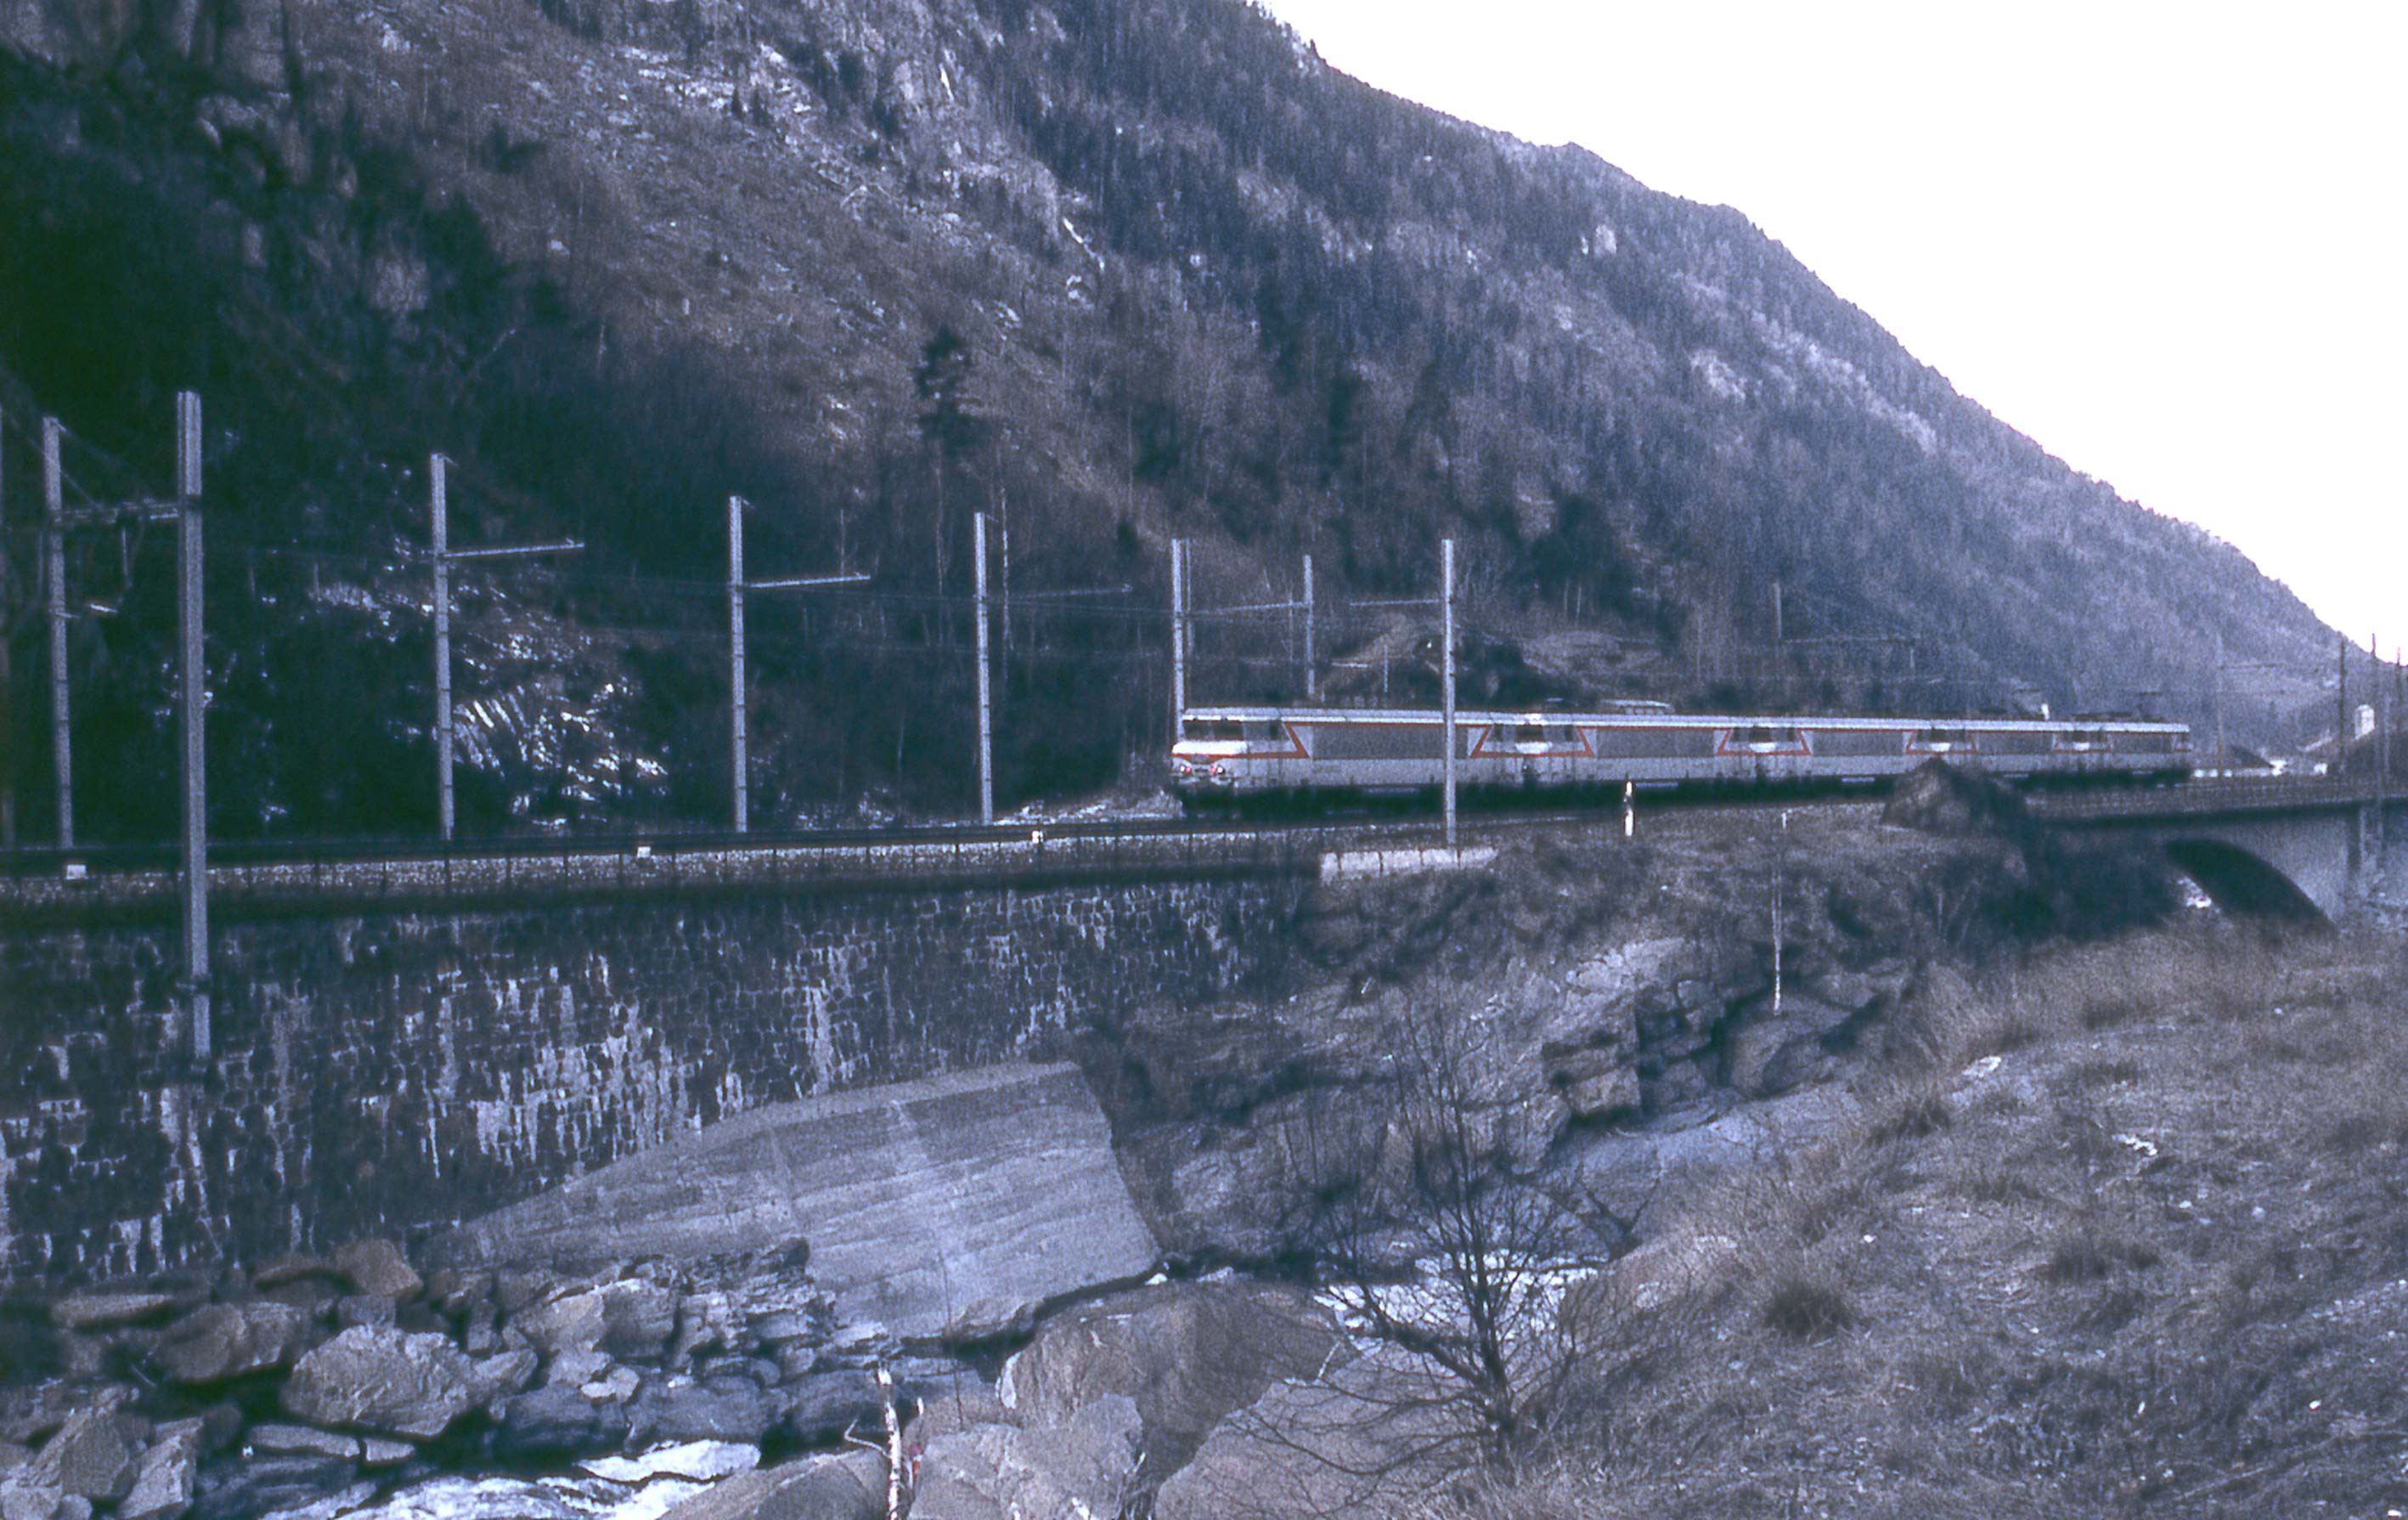 2train-machine-haute-valléeW.jpg